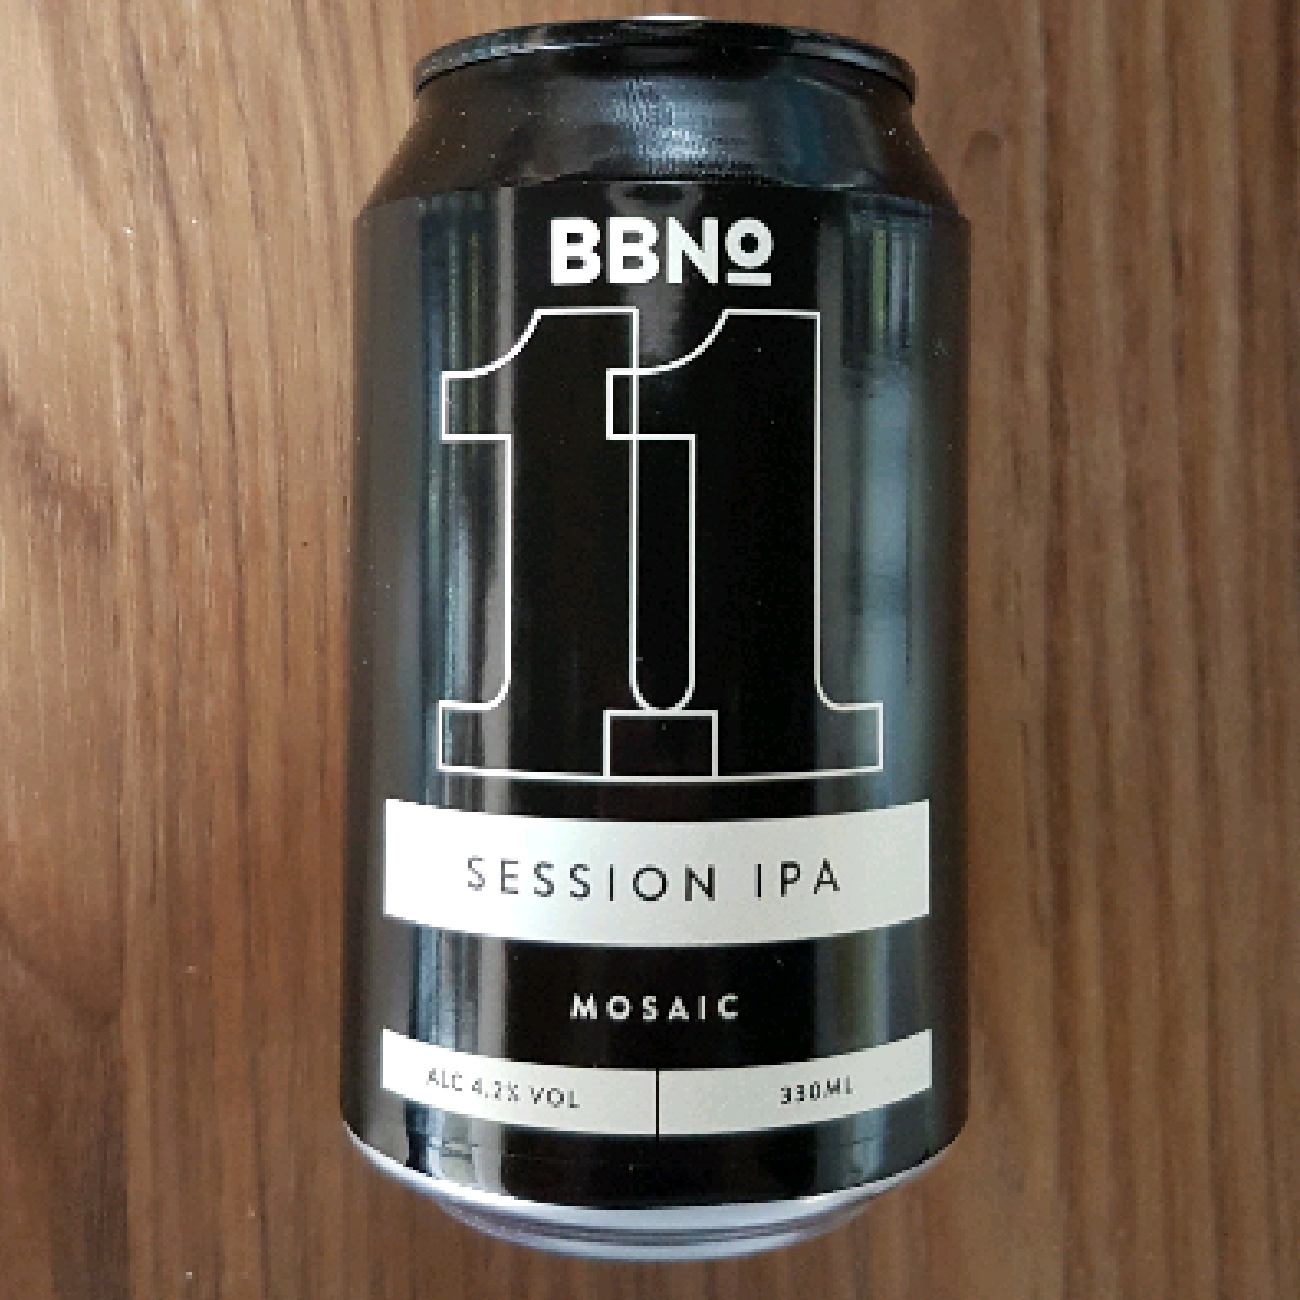 Brew by numbers 11 Mosaic Session IPA